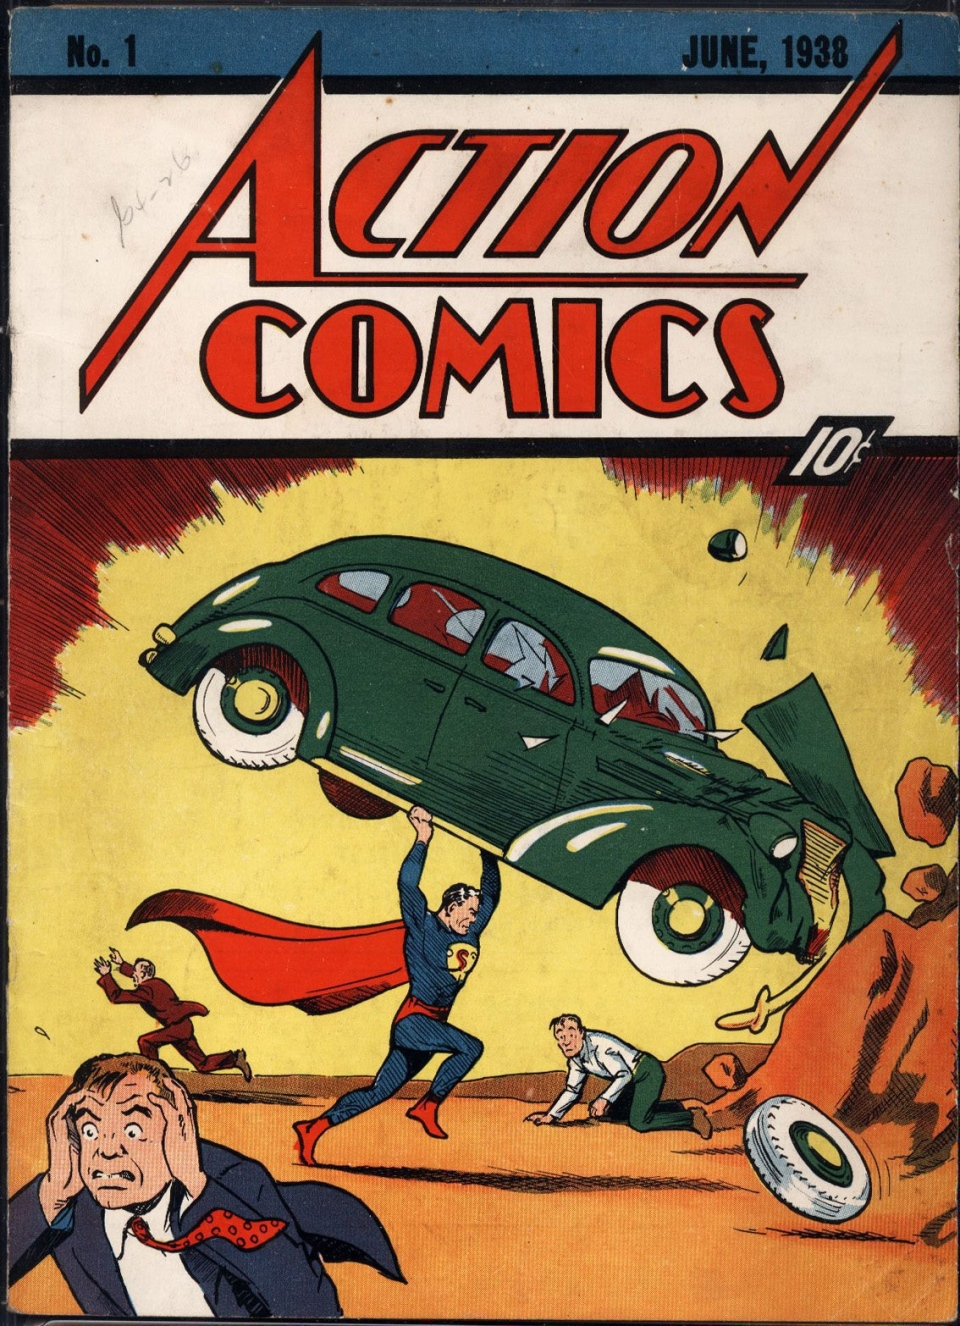 Original Superman comic sells for record $3.2M | Entertainment ...